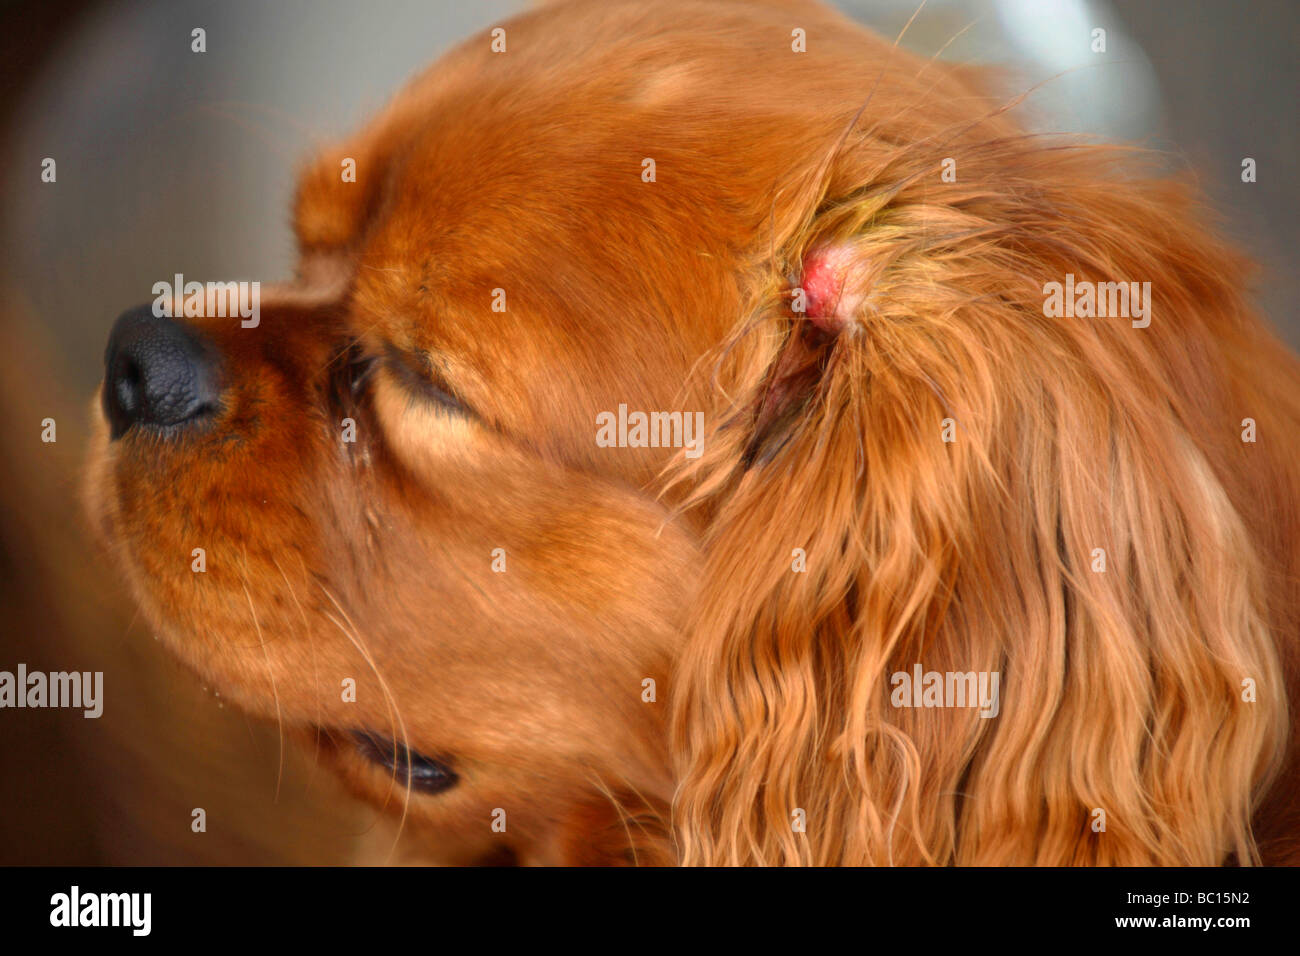 Symptoms From A Tick Bite On A Dog